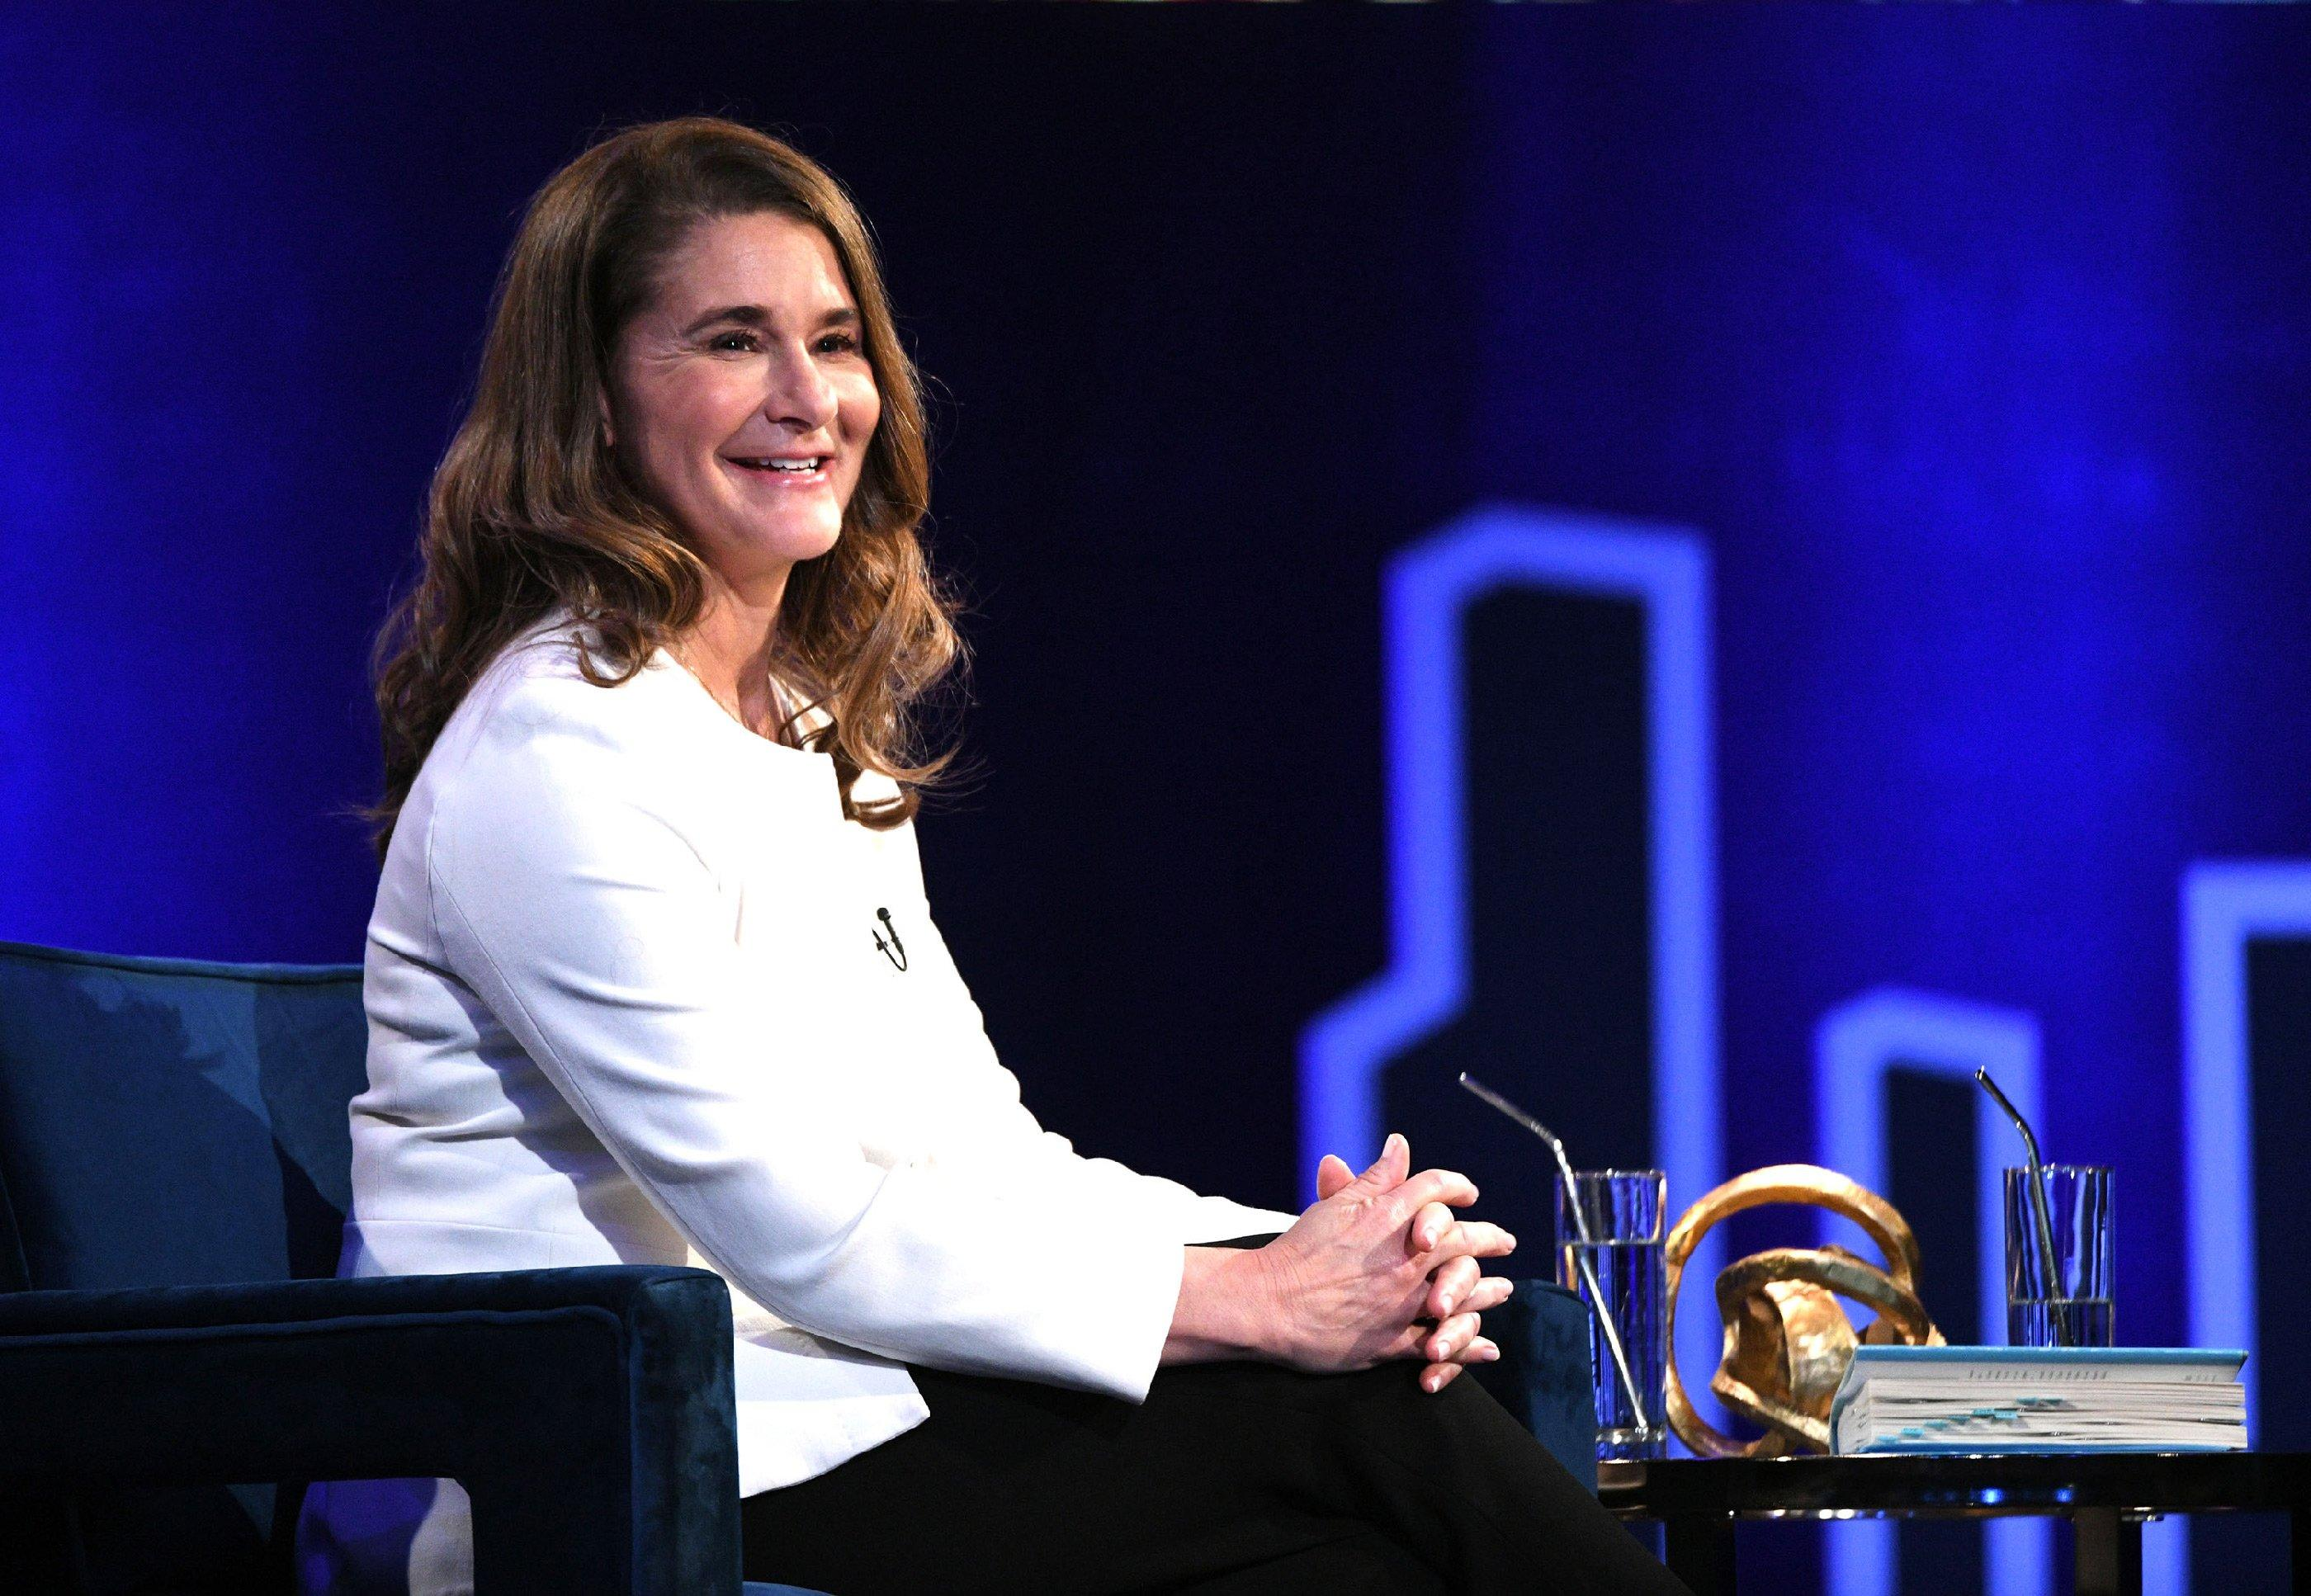 Melinda Gates Was Once in Charge of a Microsoft Product That Bombed — and Says the Failure Changed Her Career Forever